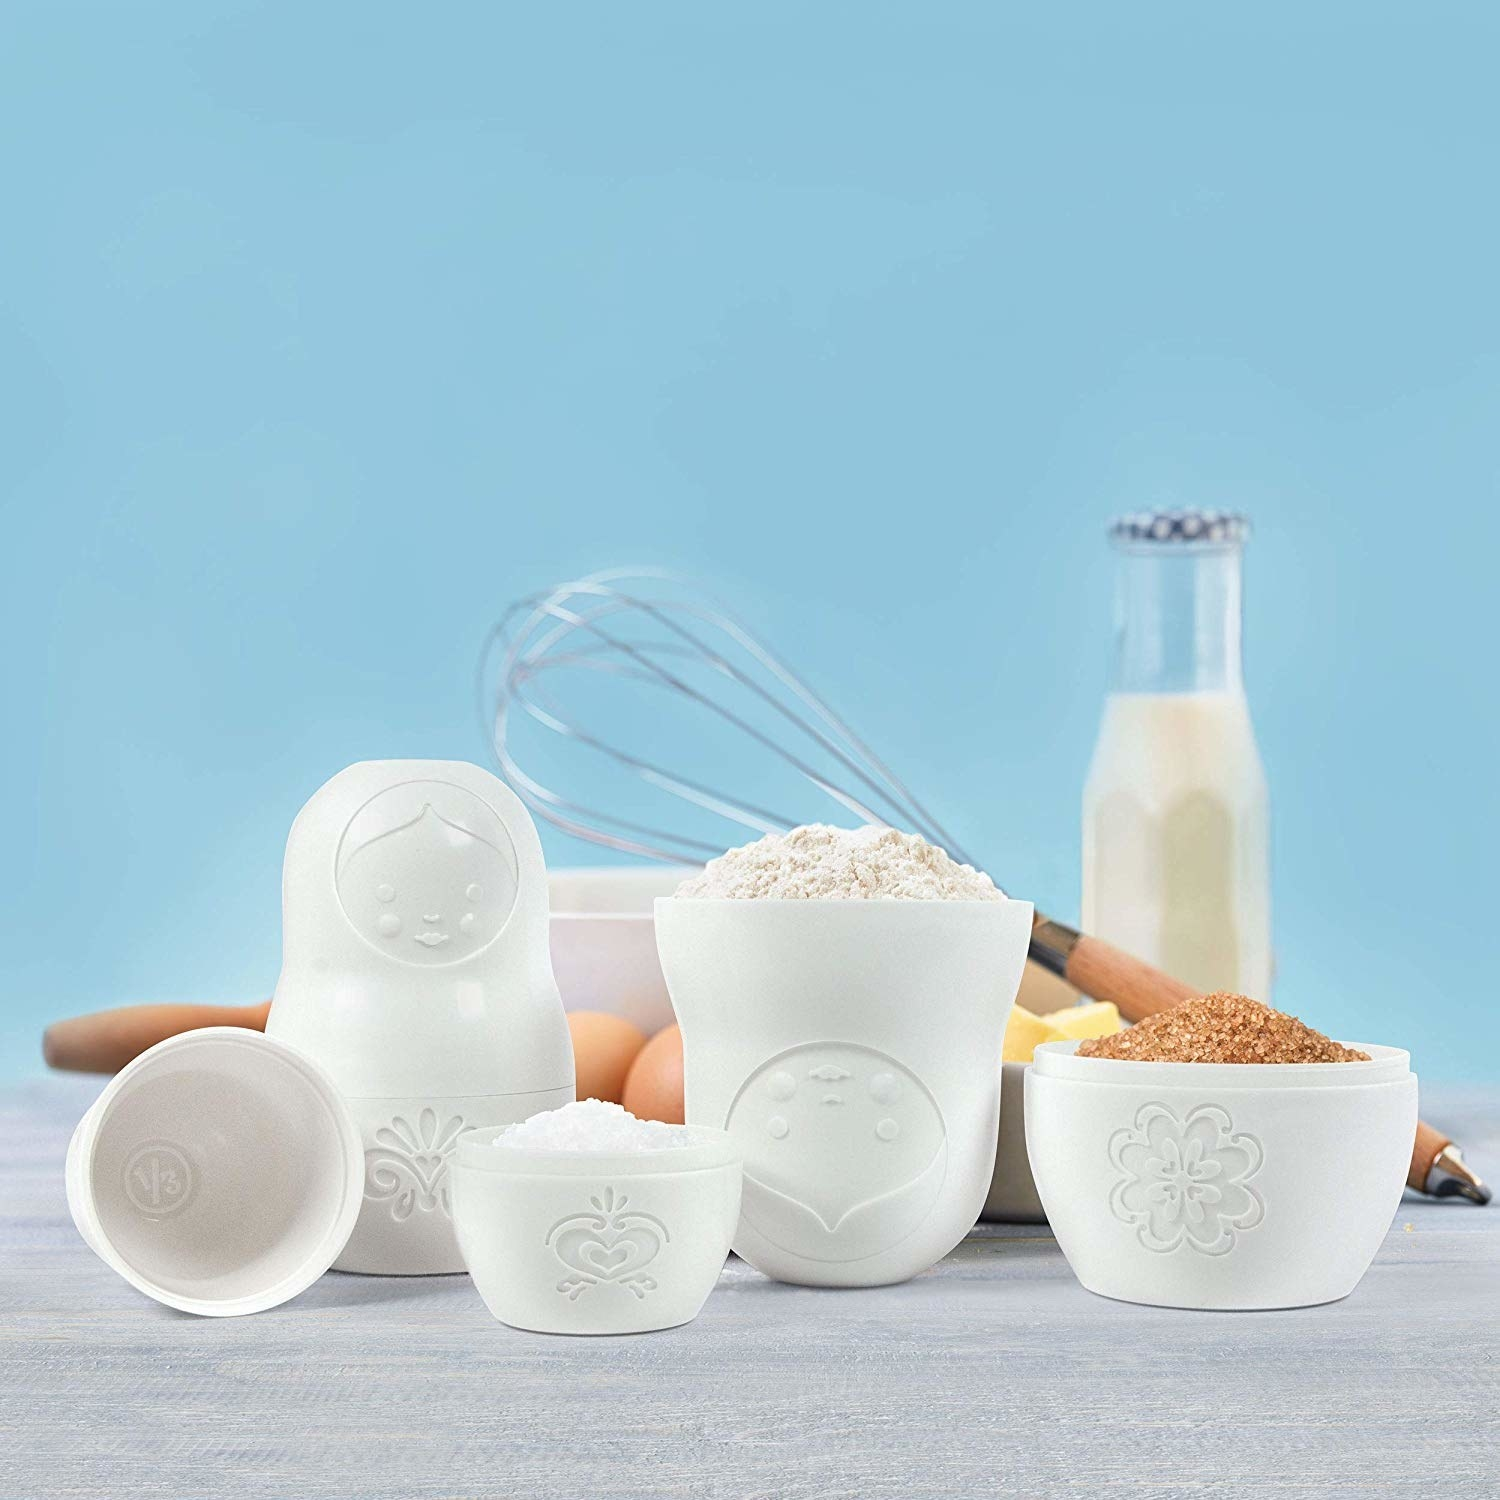 A set of nesting doll measuring cups filled with dry ingredients